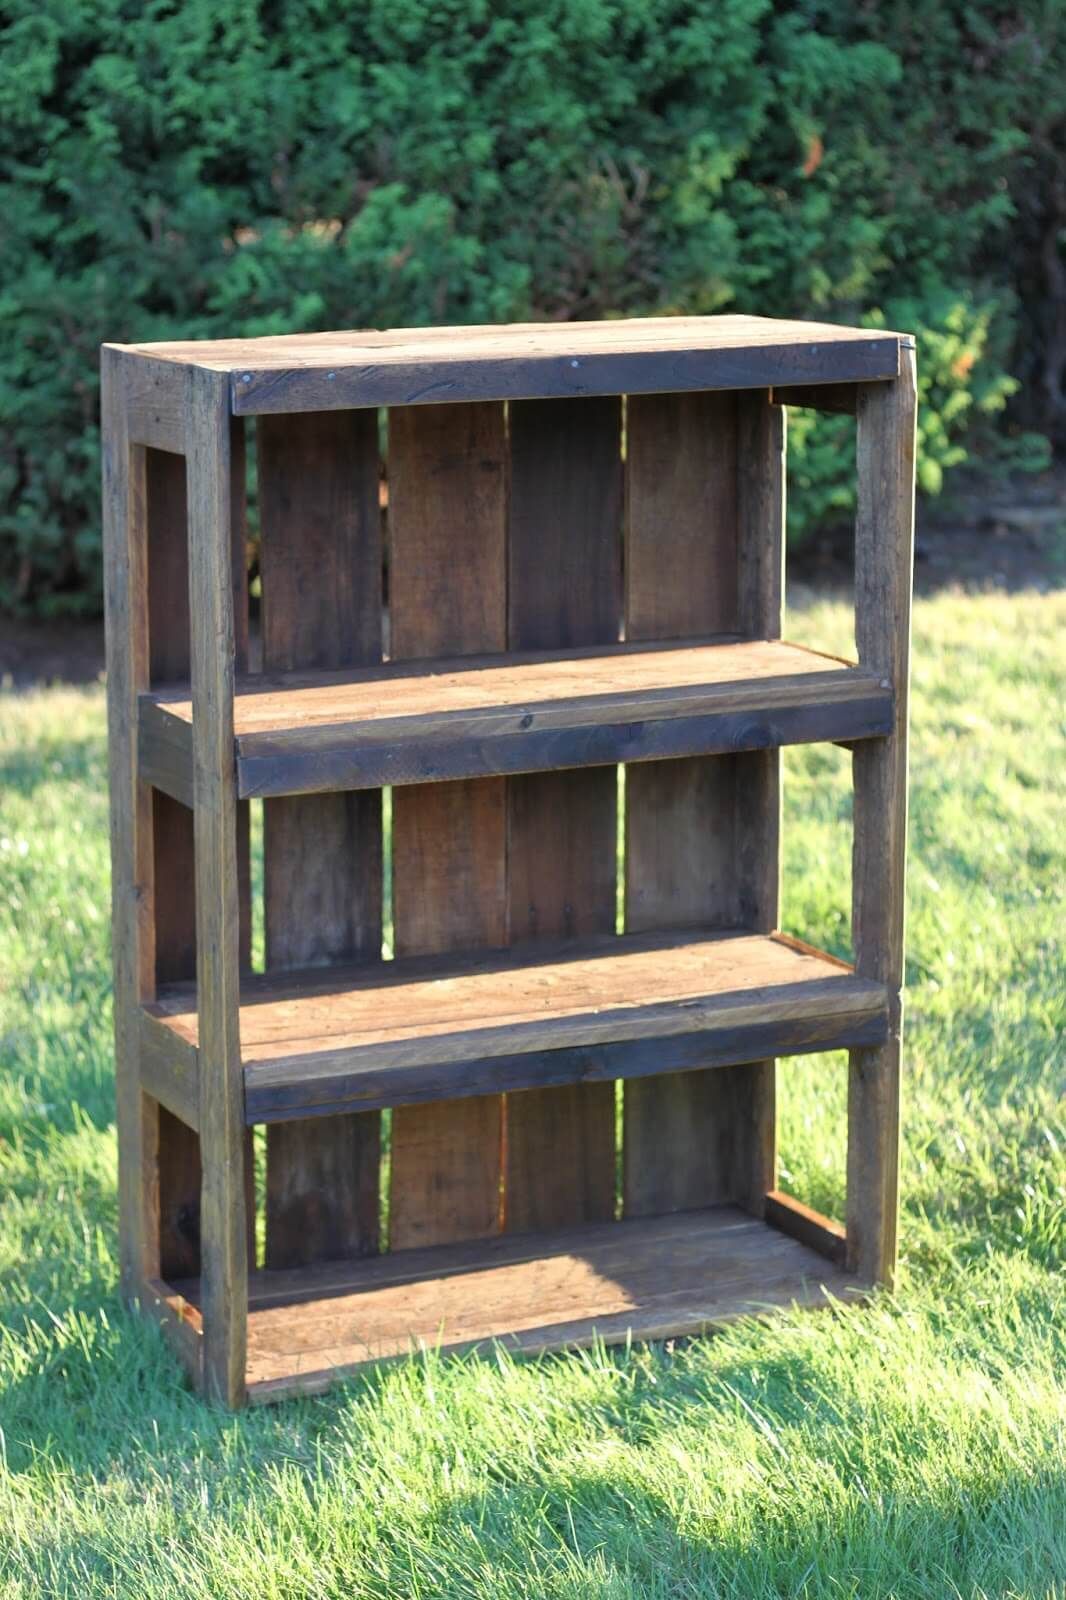 Simple Rustic Recycled Pallet DIY Bookshelf Design